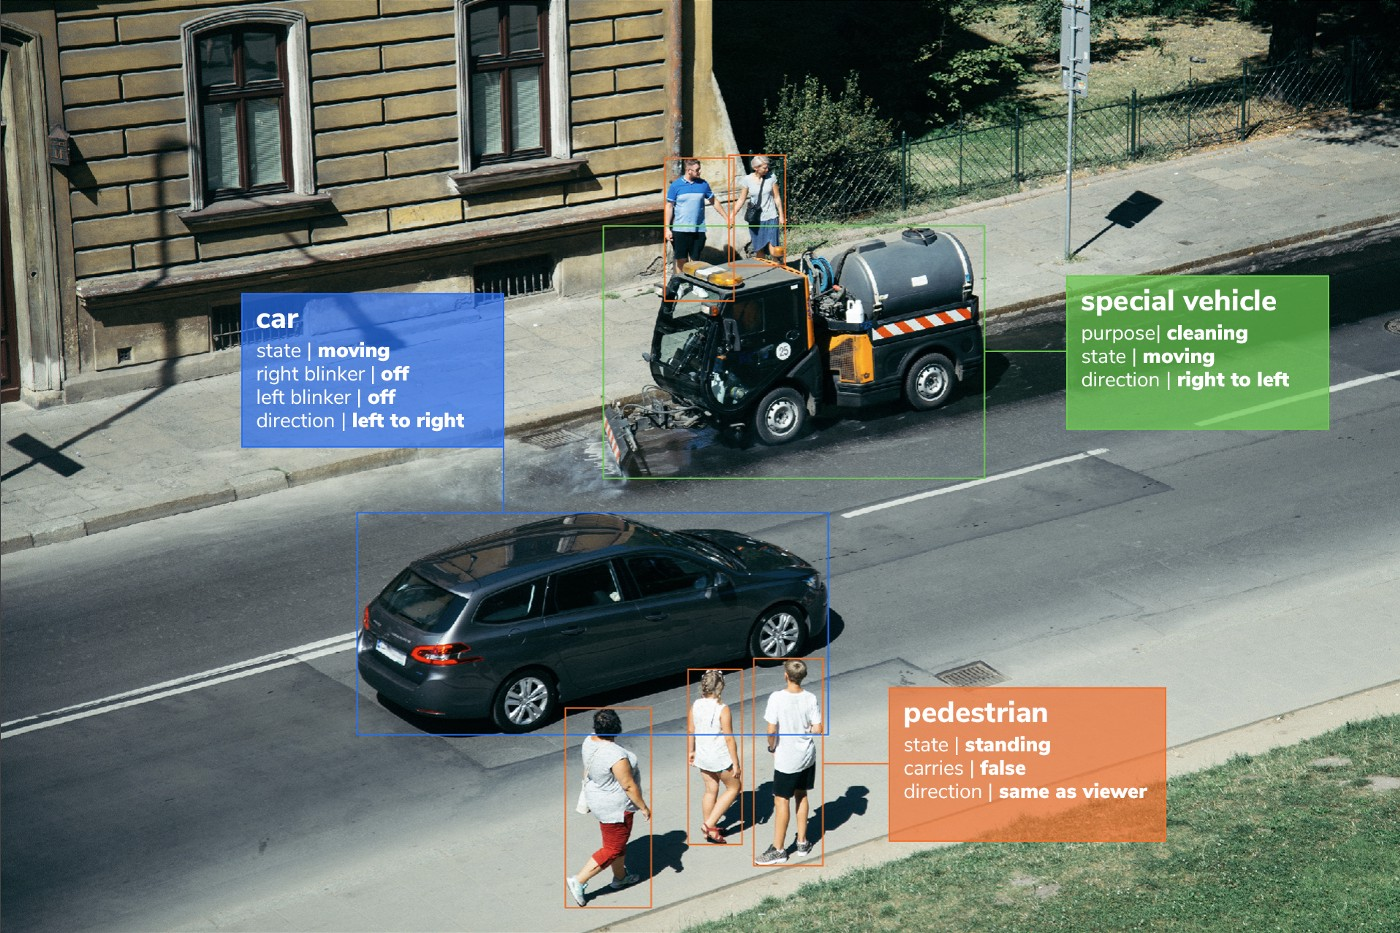 Autonomous driving - annotated objects with attributes